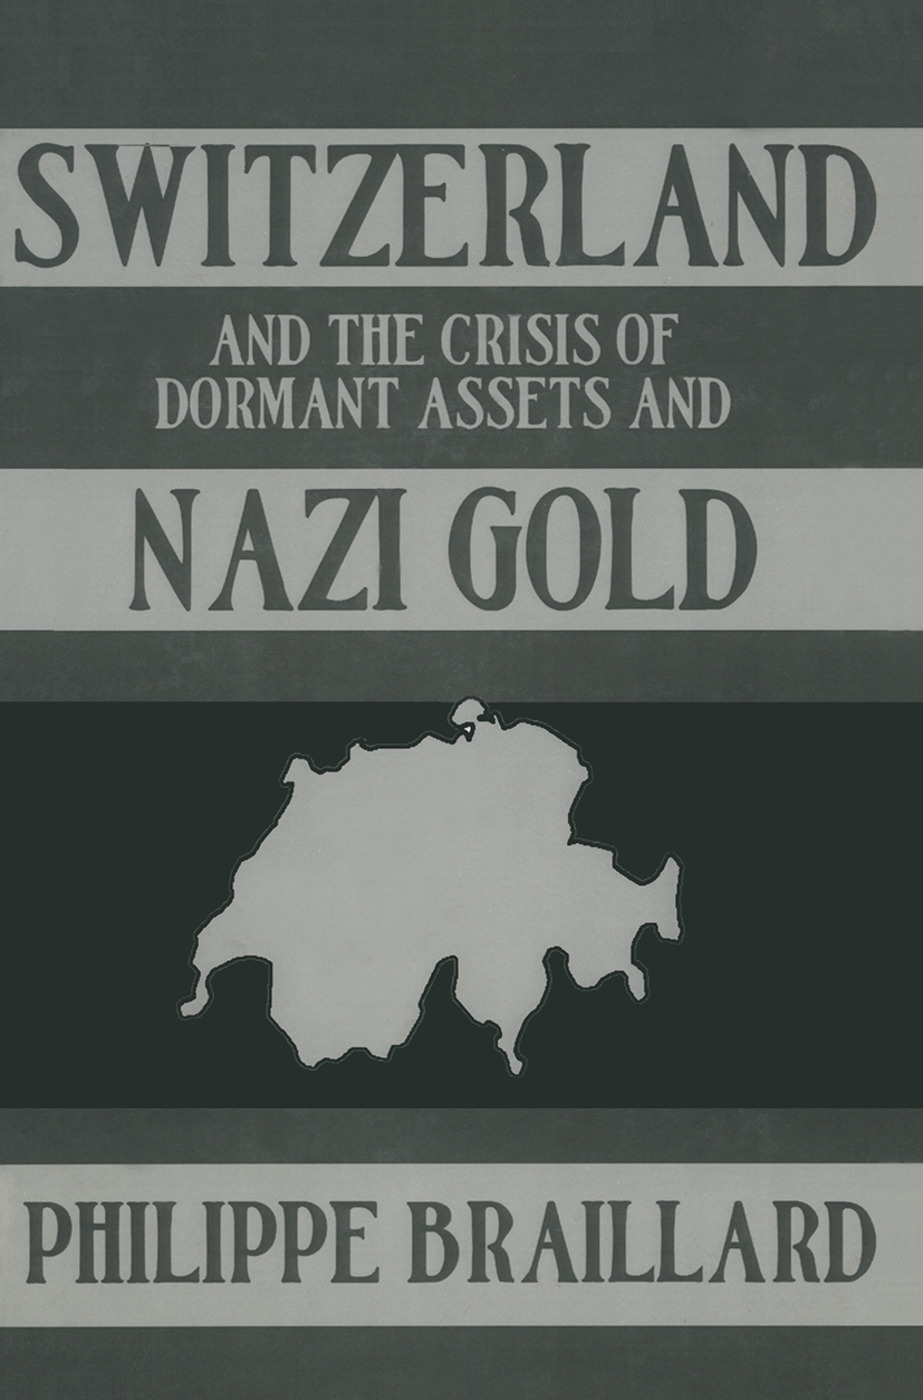 Switzerland & The Nazi Gold